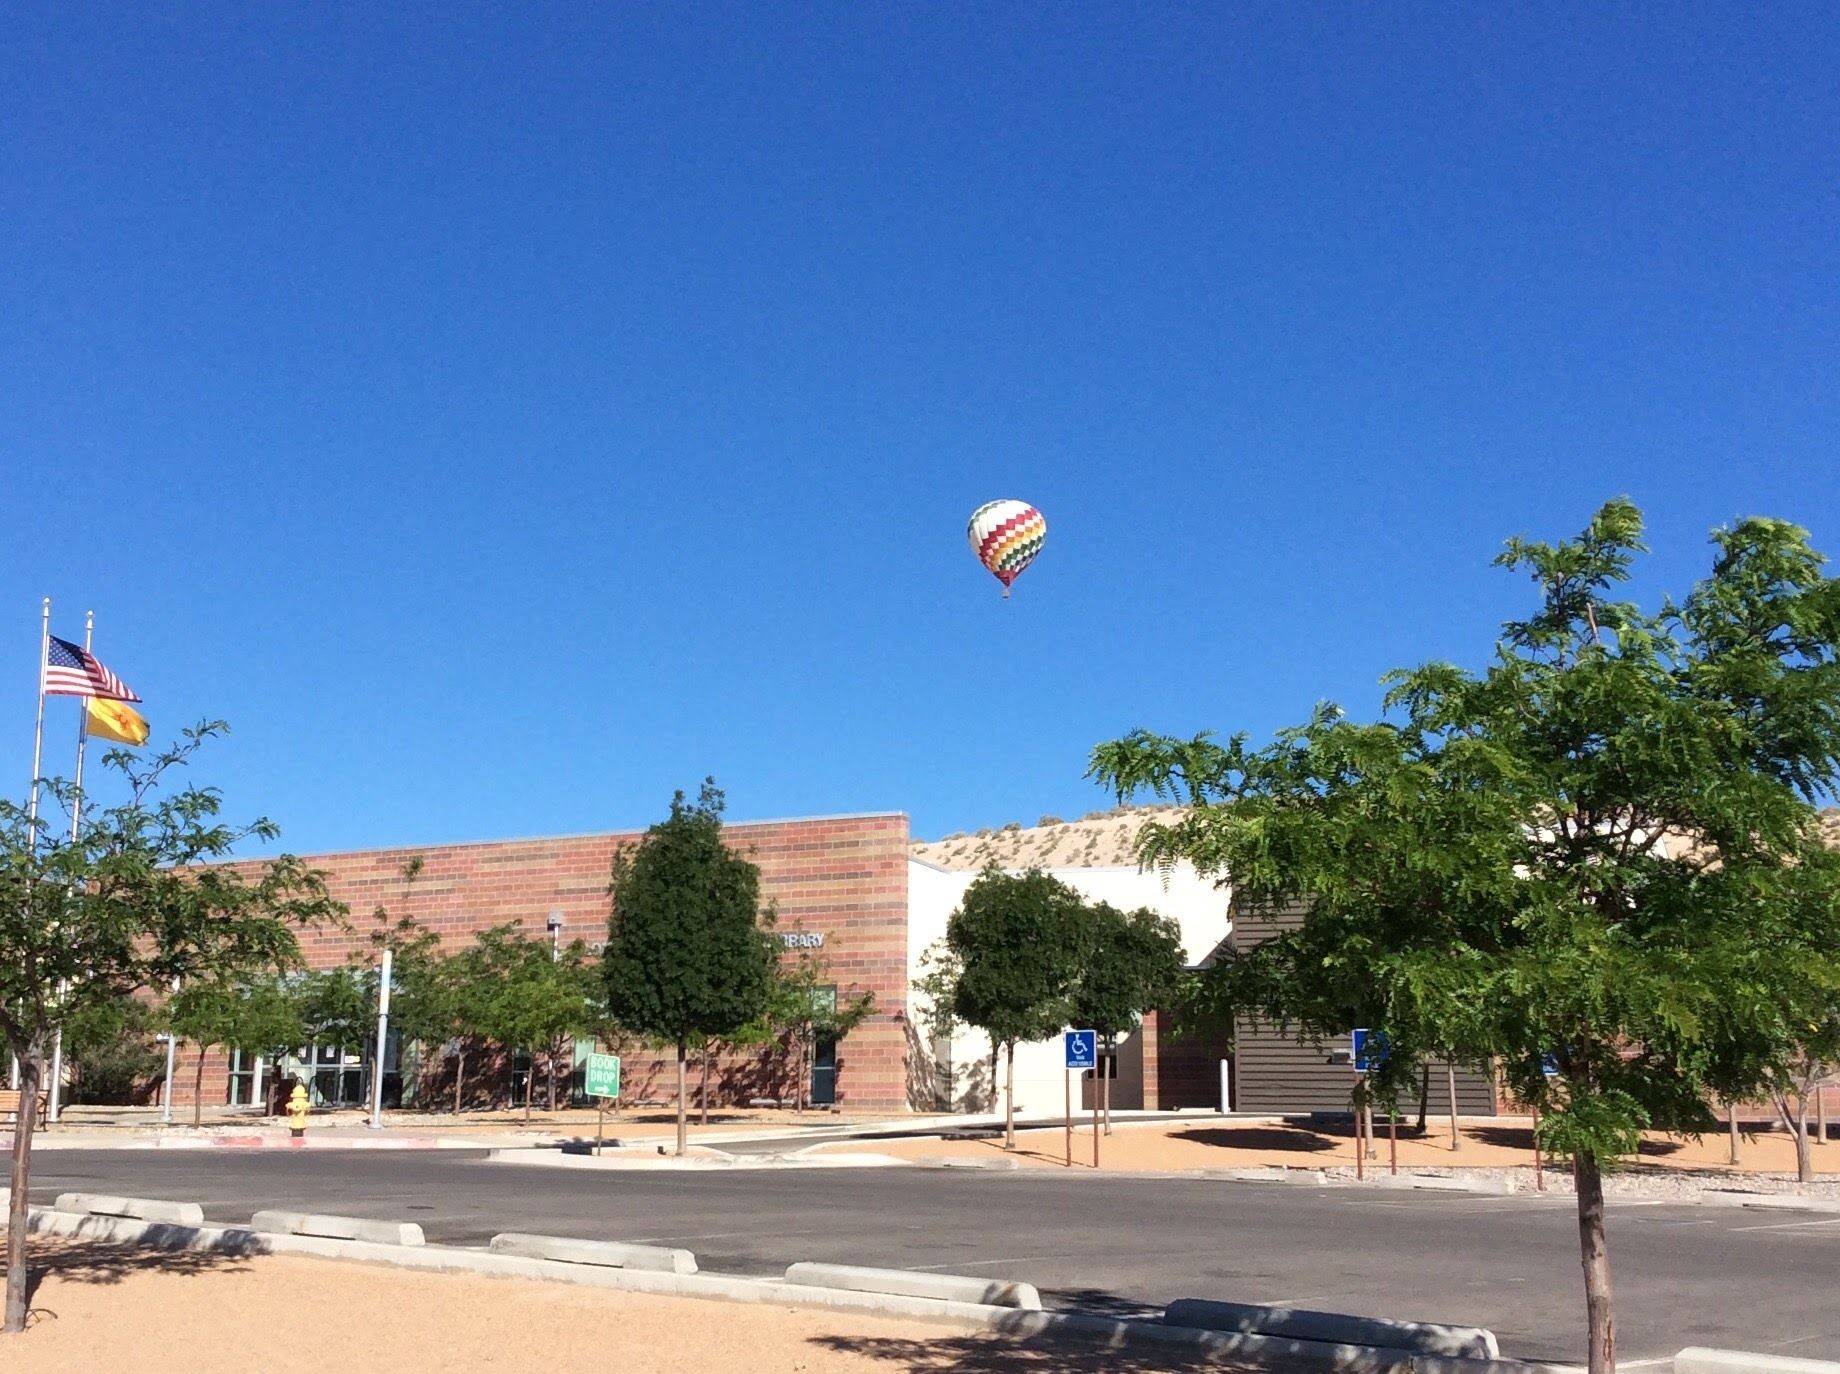 Loma Colorado Main Library, hot air balloon